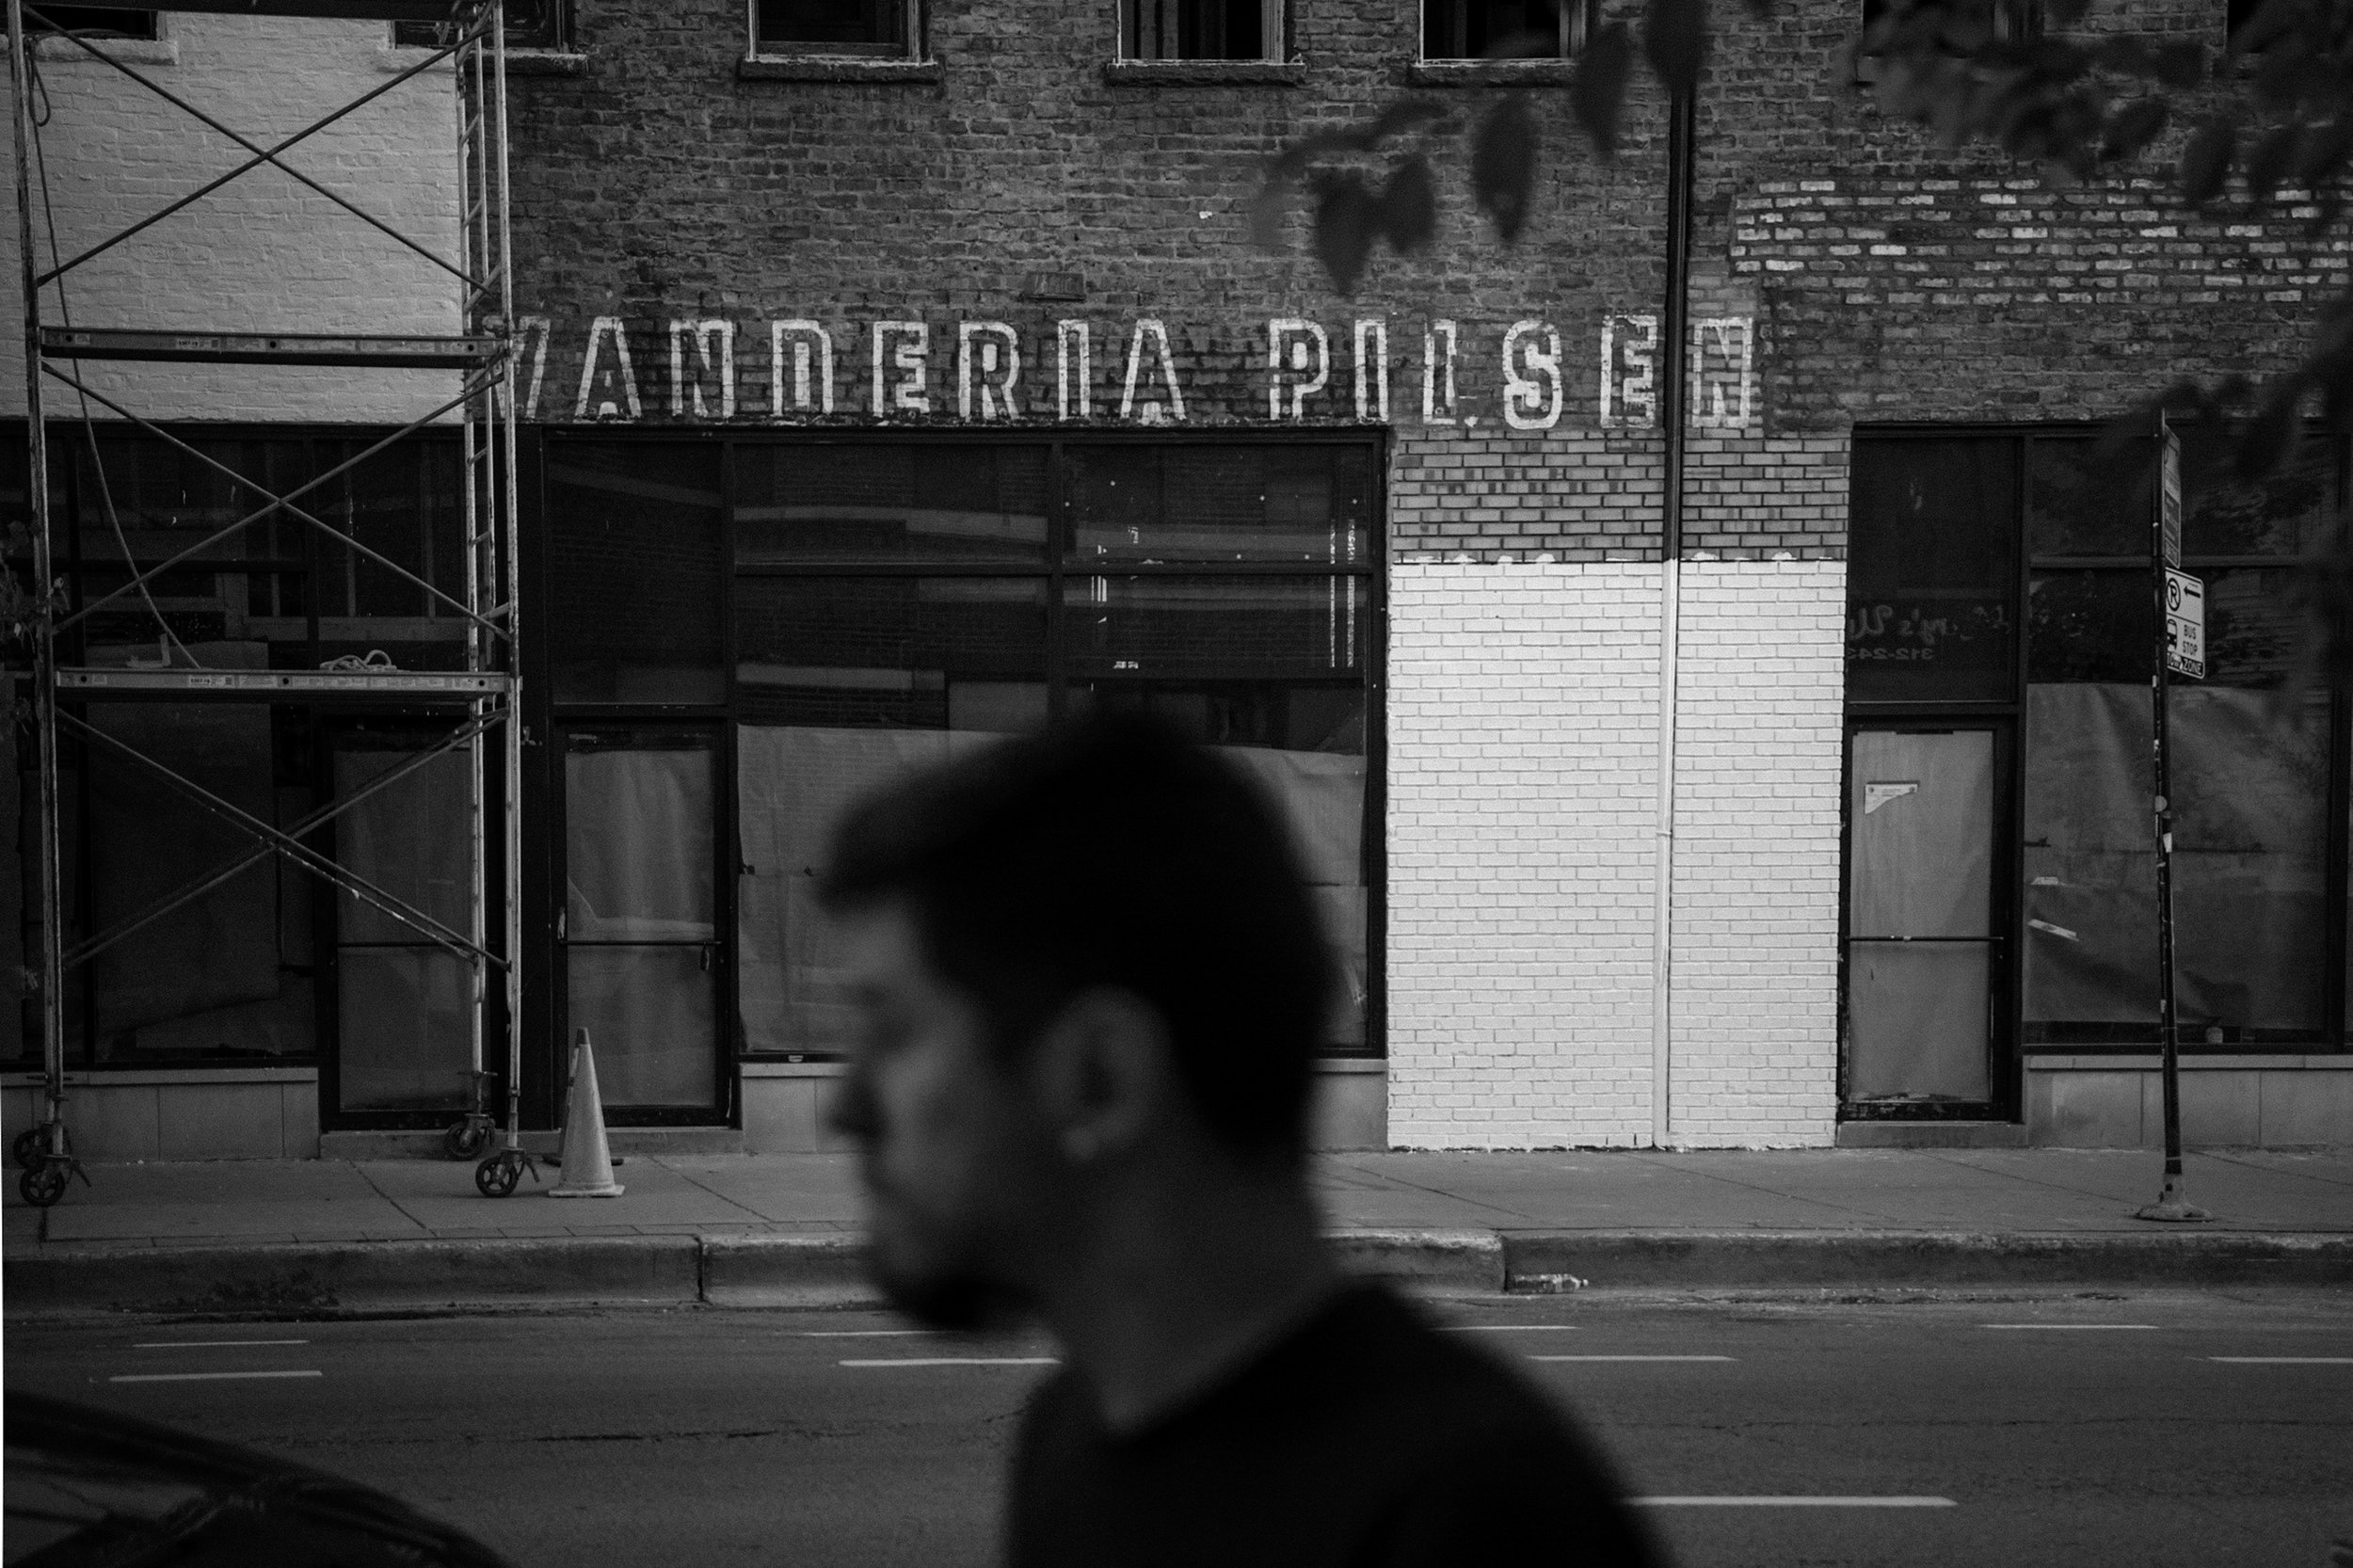 La Vanderia Pilsen, a known local gathering is cover in white paint after the building sold to developers.